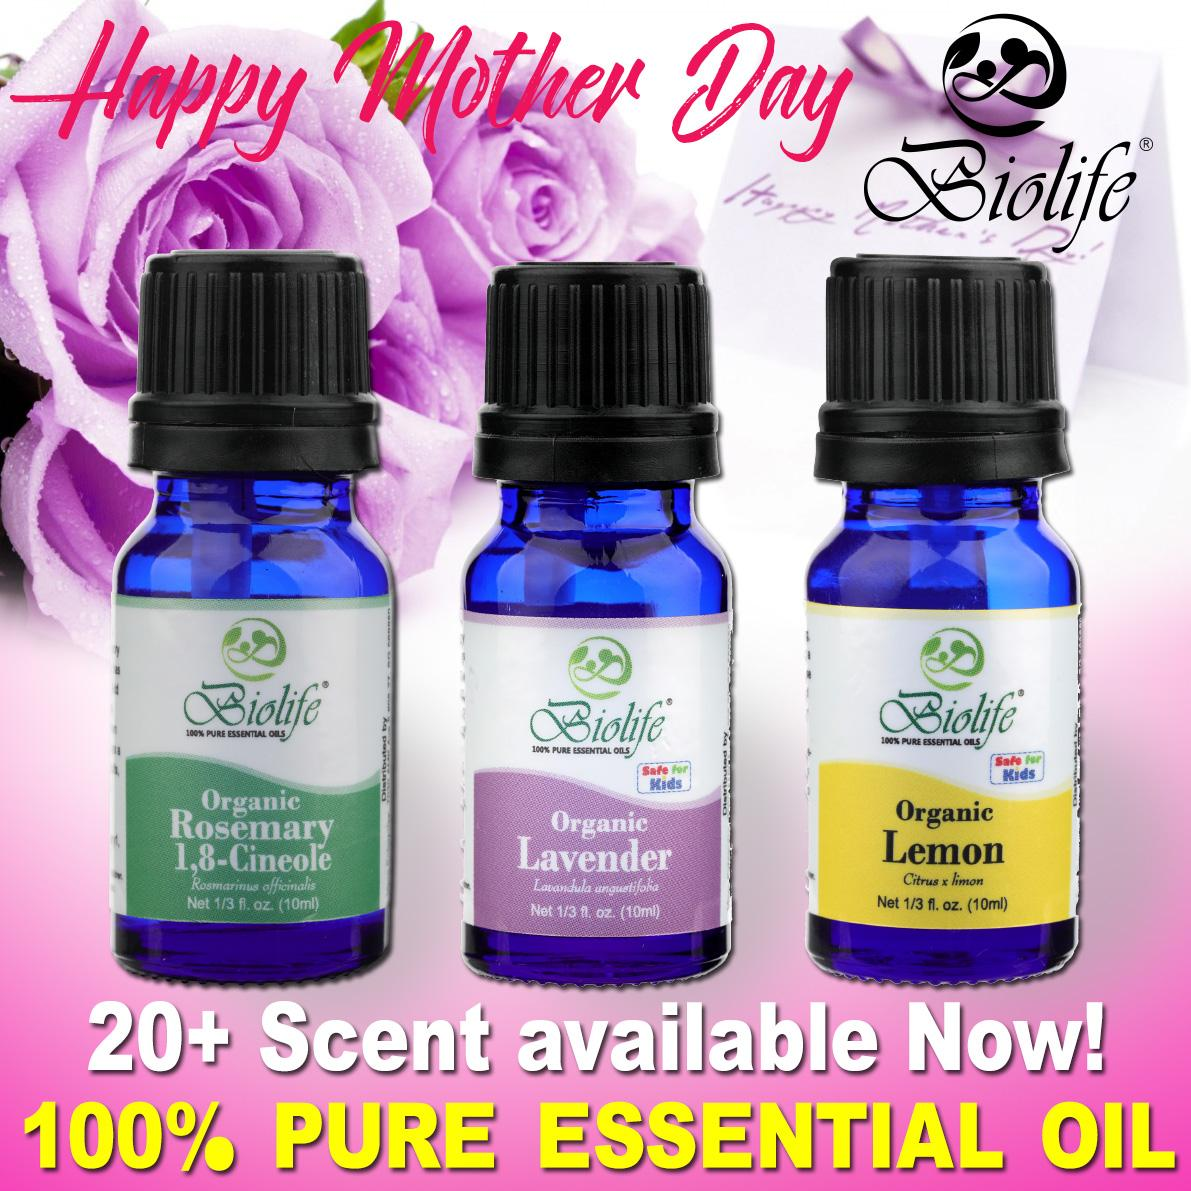 Biolife 100% Pure And Natural Organic Essential Oil With 20+ Scent Available (made In Usa), 10ml Bottle By Cabs Professional.